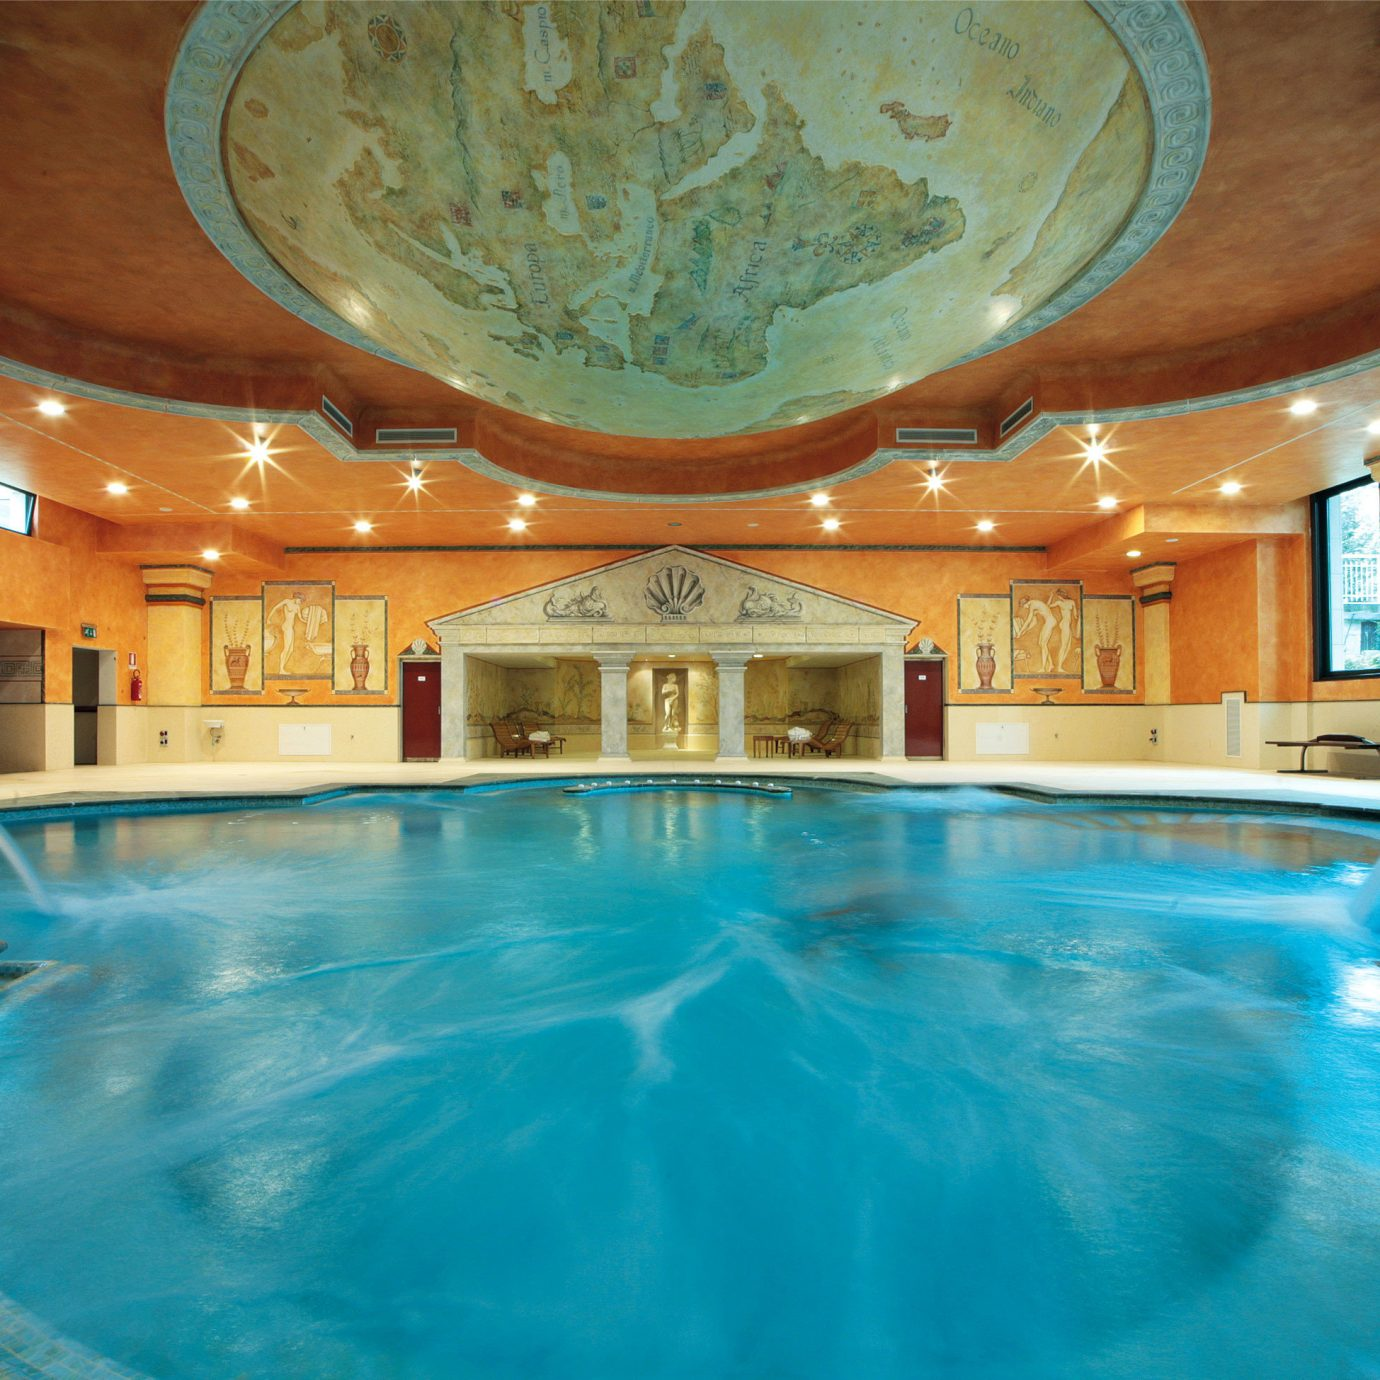 Cultural Play Pool Wellness swimming pool property Resort building blue leisure centre jacuzzi mansion thermae swimming